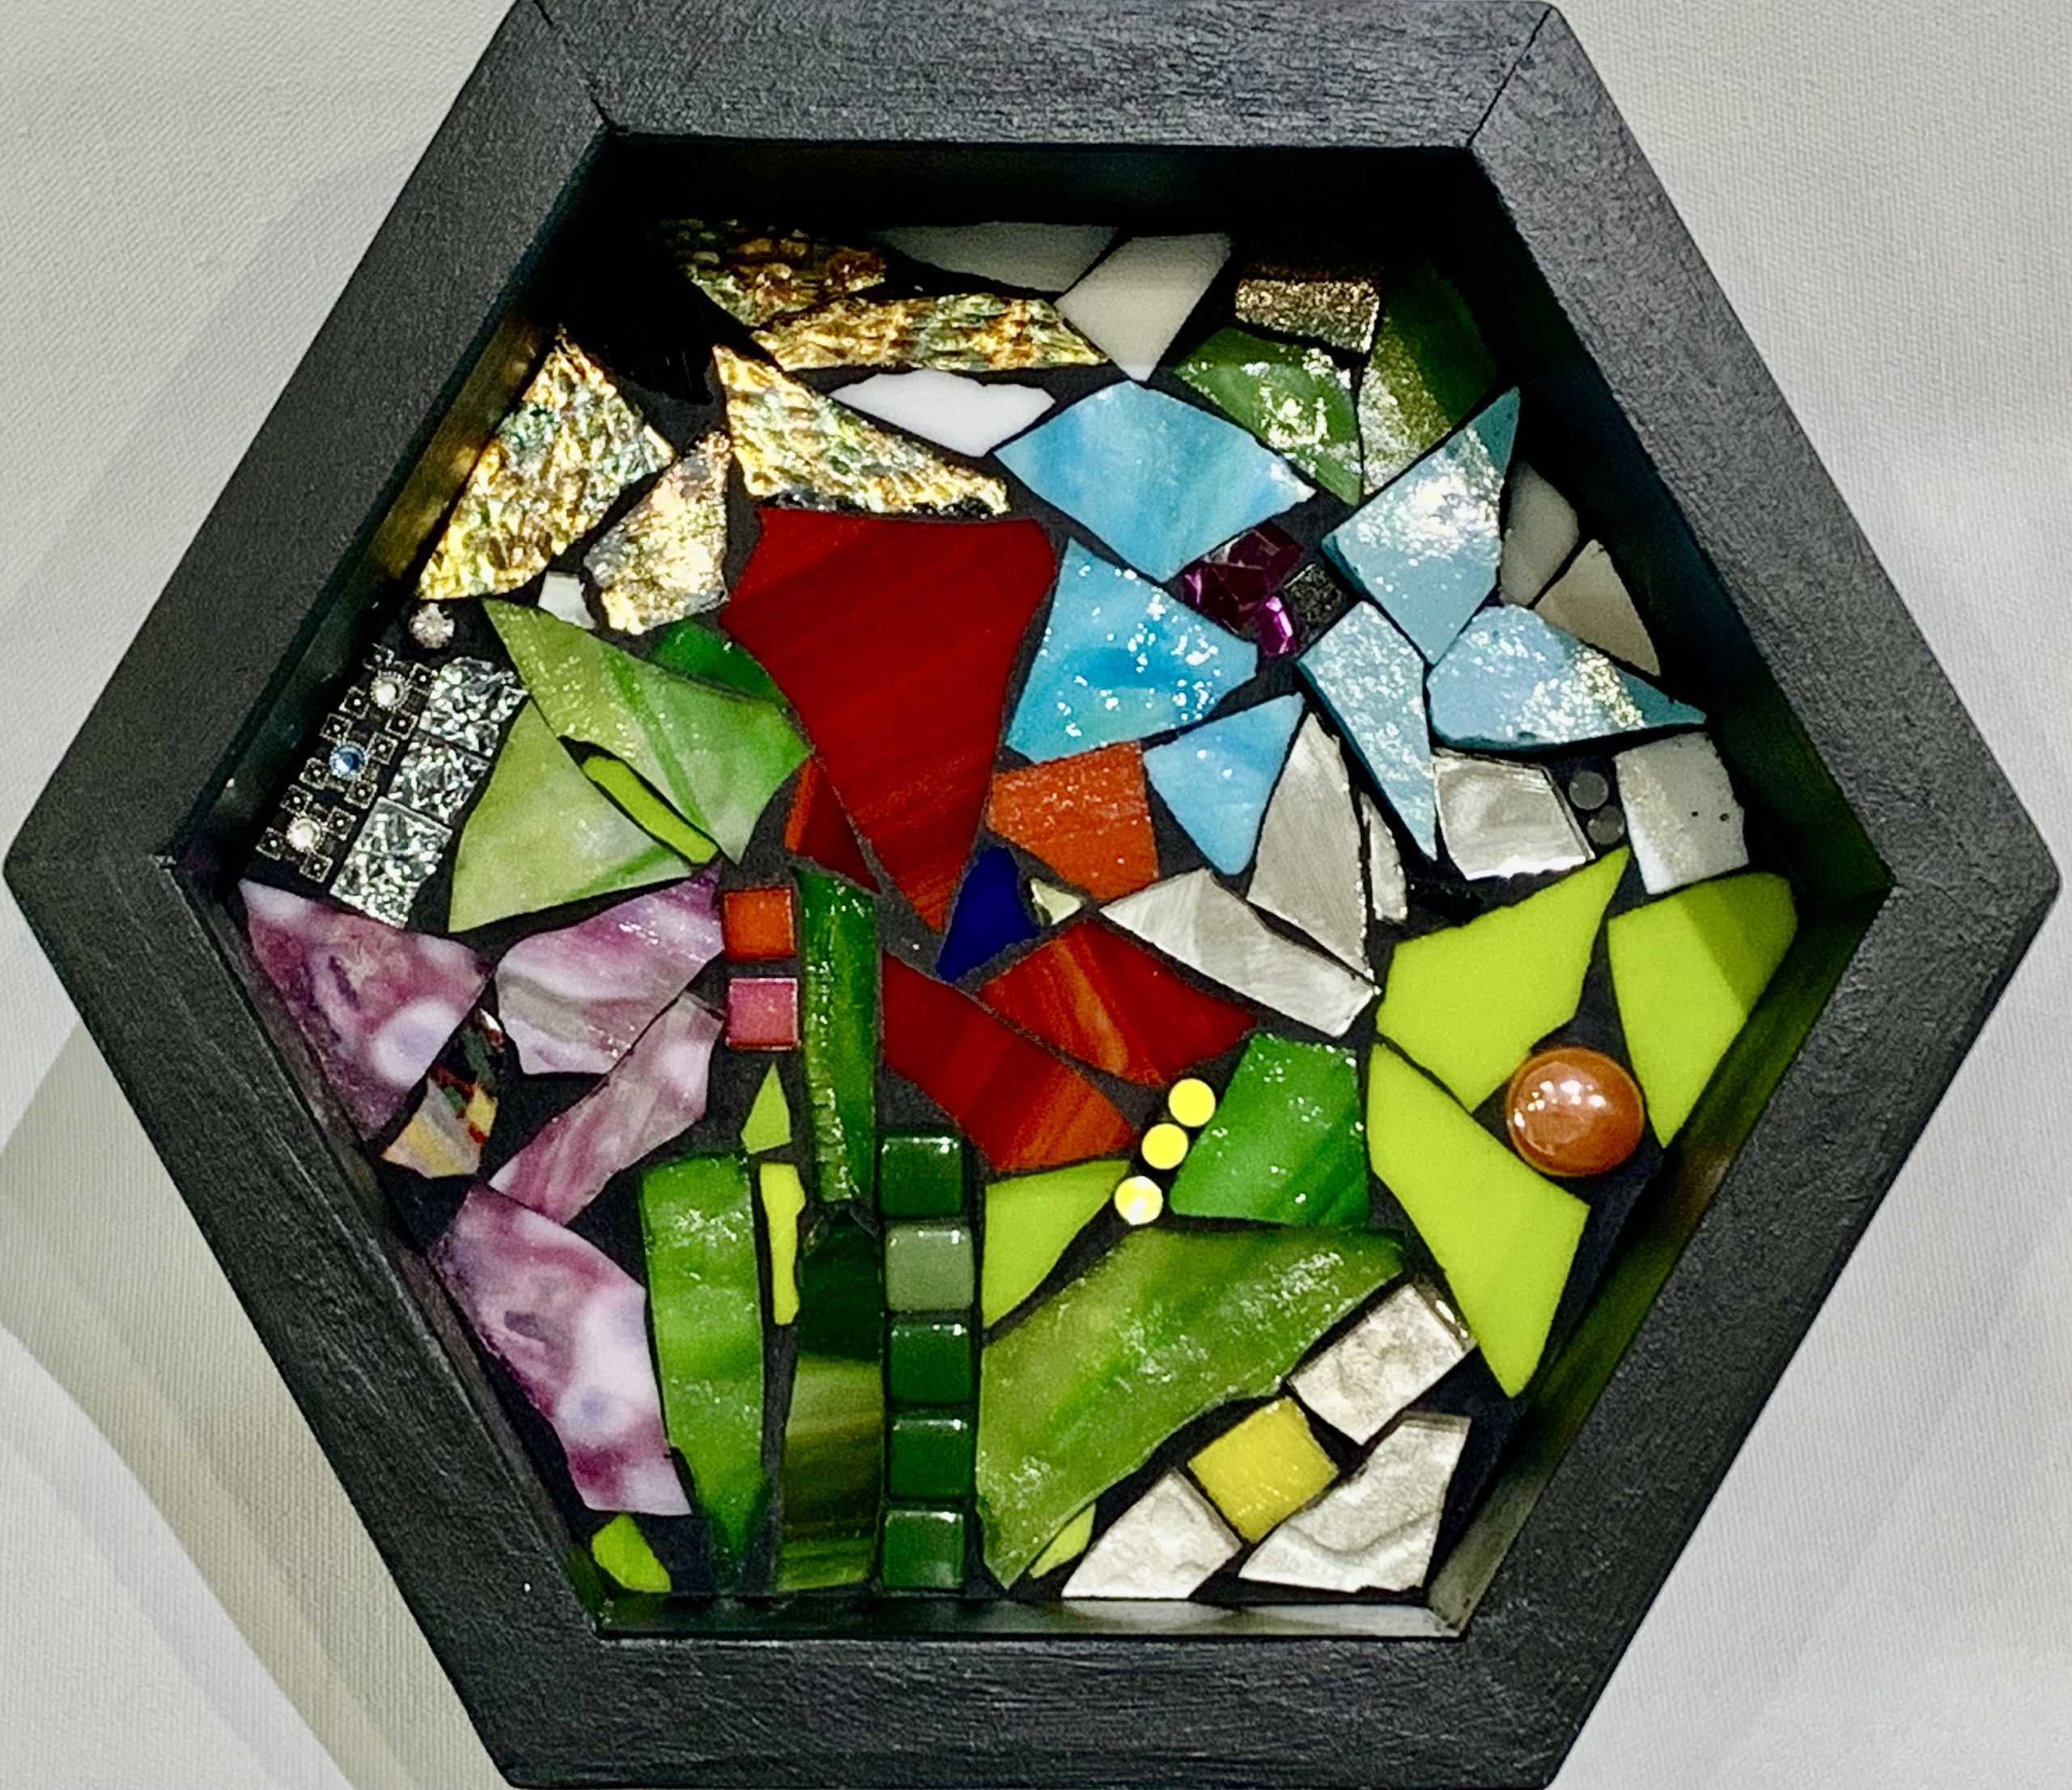 Add a Little Spark, stained glass mosaic by Kimberly Kiel | Effusion Art Gallery + Cast Glass Studio, Invermere BC